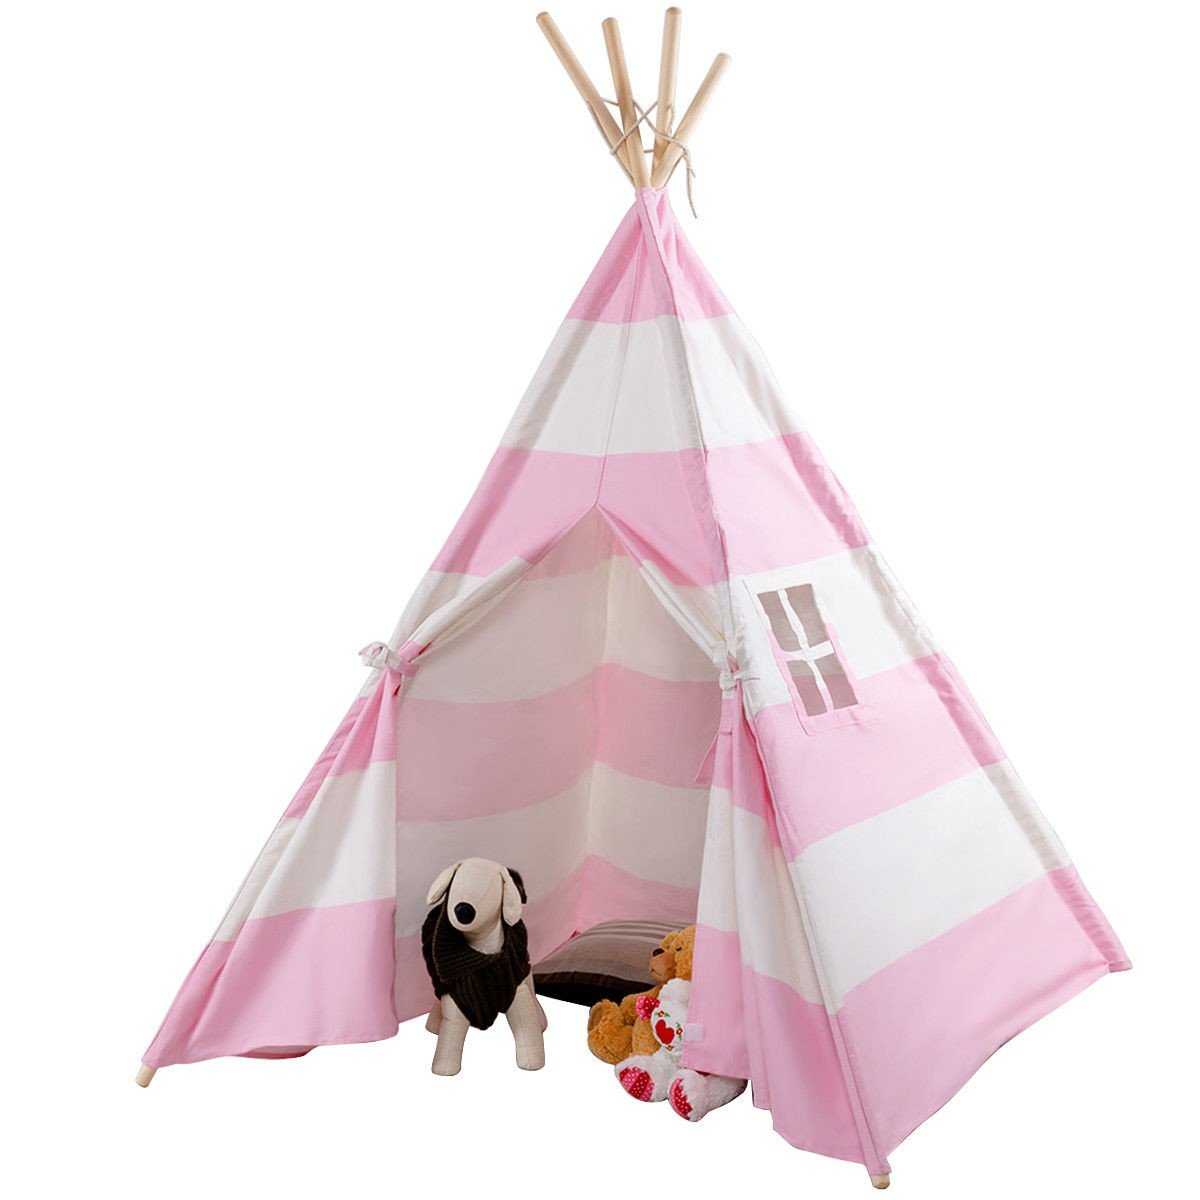 COSTWAY Kids Indian Play Tent Teepee Children Girl Boy Play House Sleeping Dome Bag Pink + FREE E - Book Only By eight24hours by COSTWAY (Image #2)